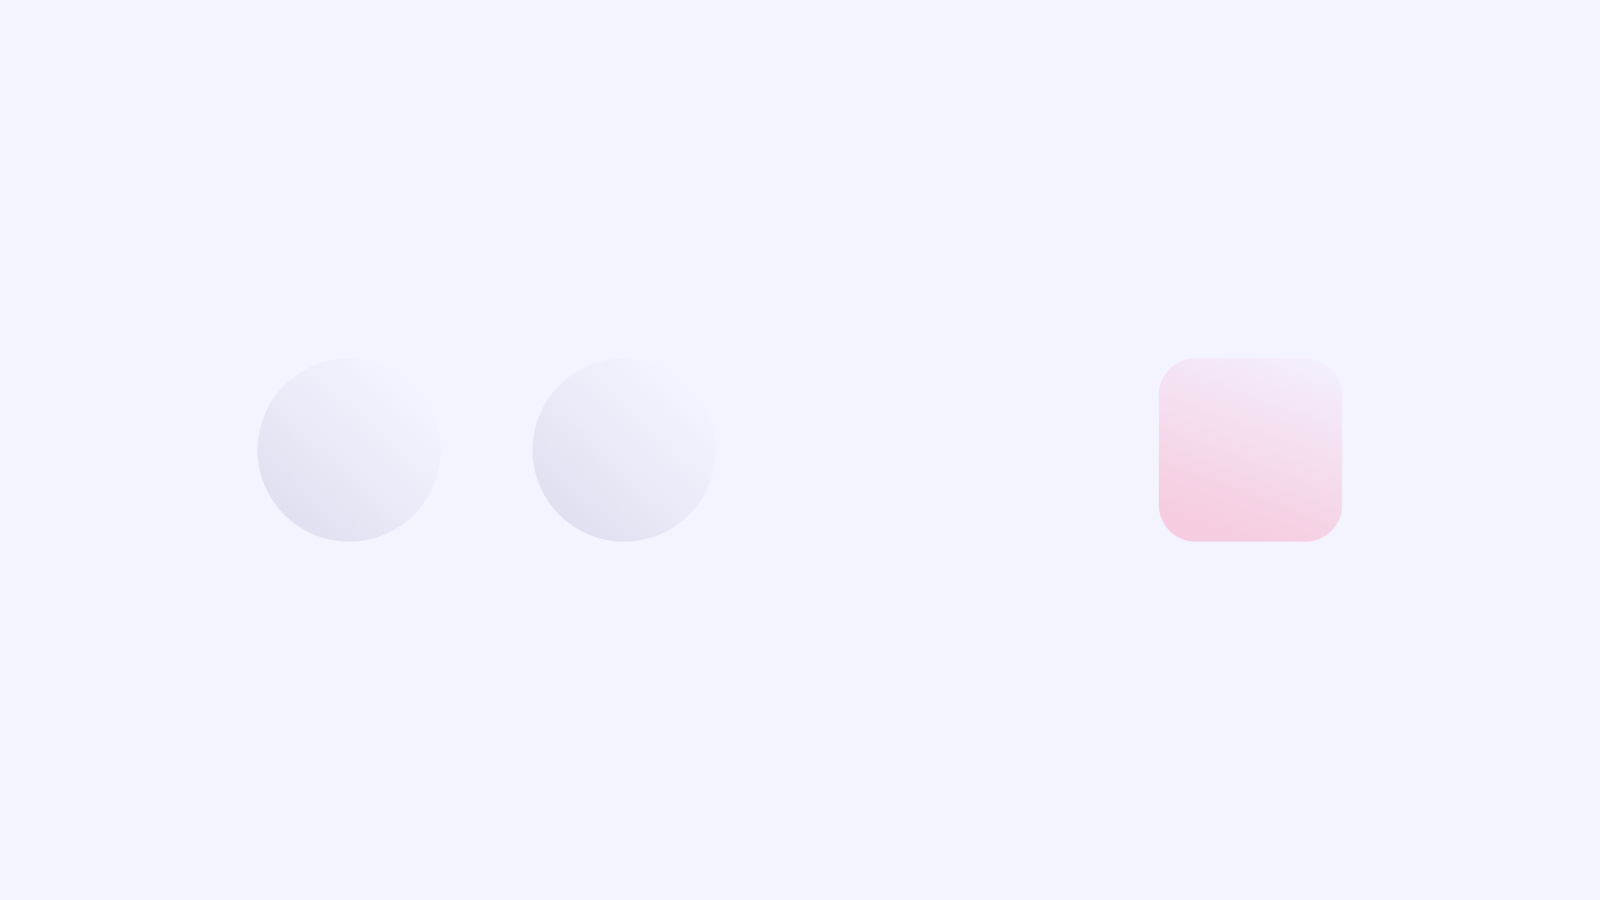 In this graphic, the rounded circles are together, so they are related. The square is further away, which means it belongs to a different content type.